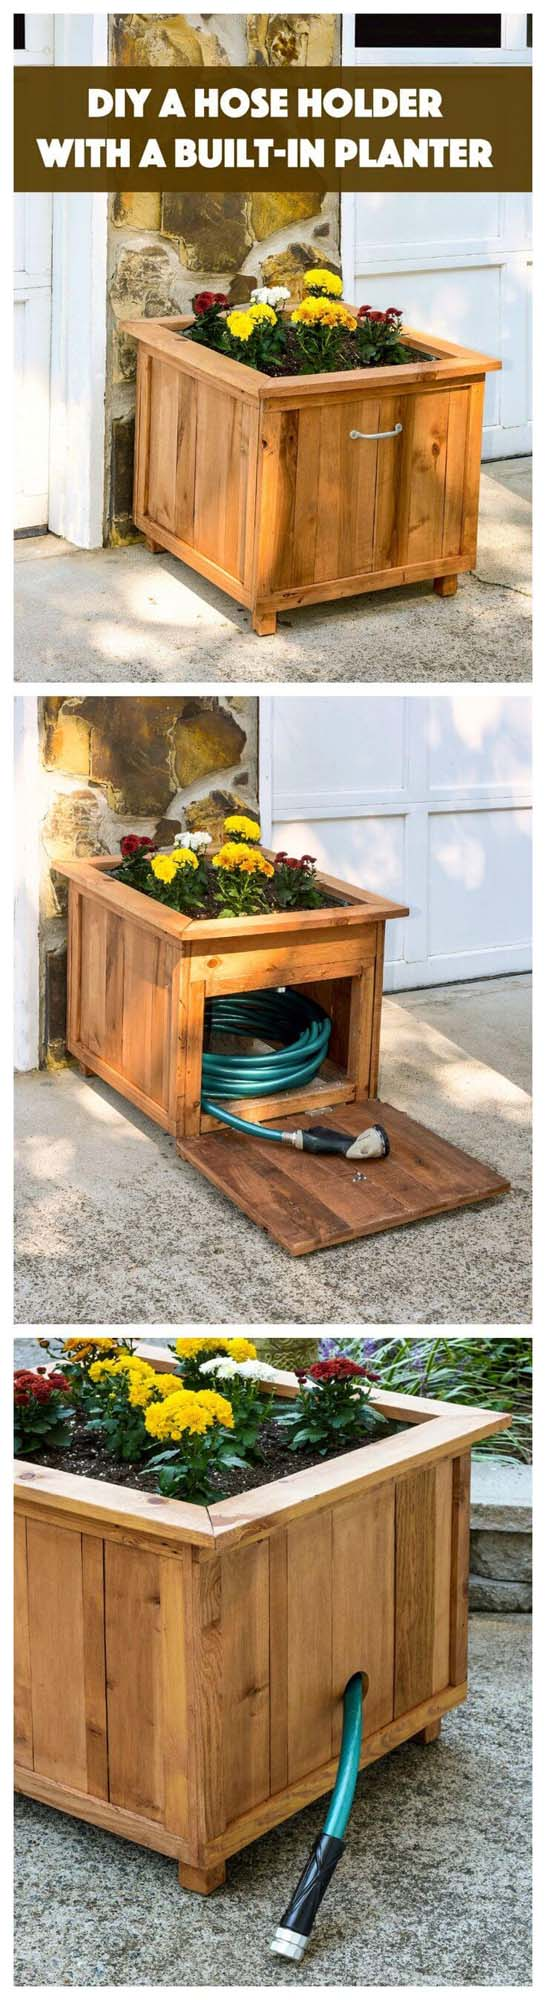 DIY Hose Holder with Pallet Wood Planter #hideaway #projects #decorhomeideas